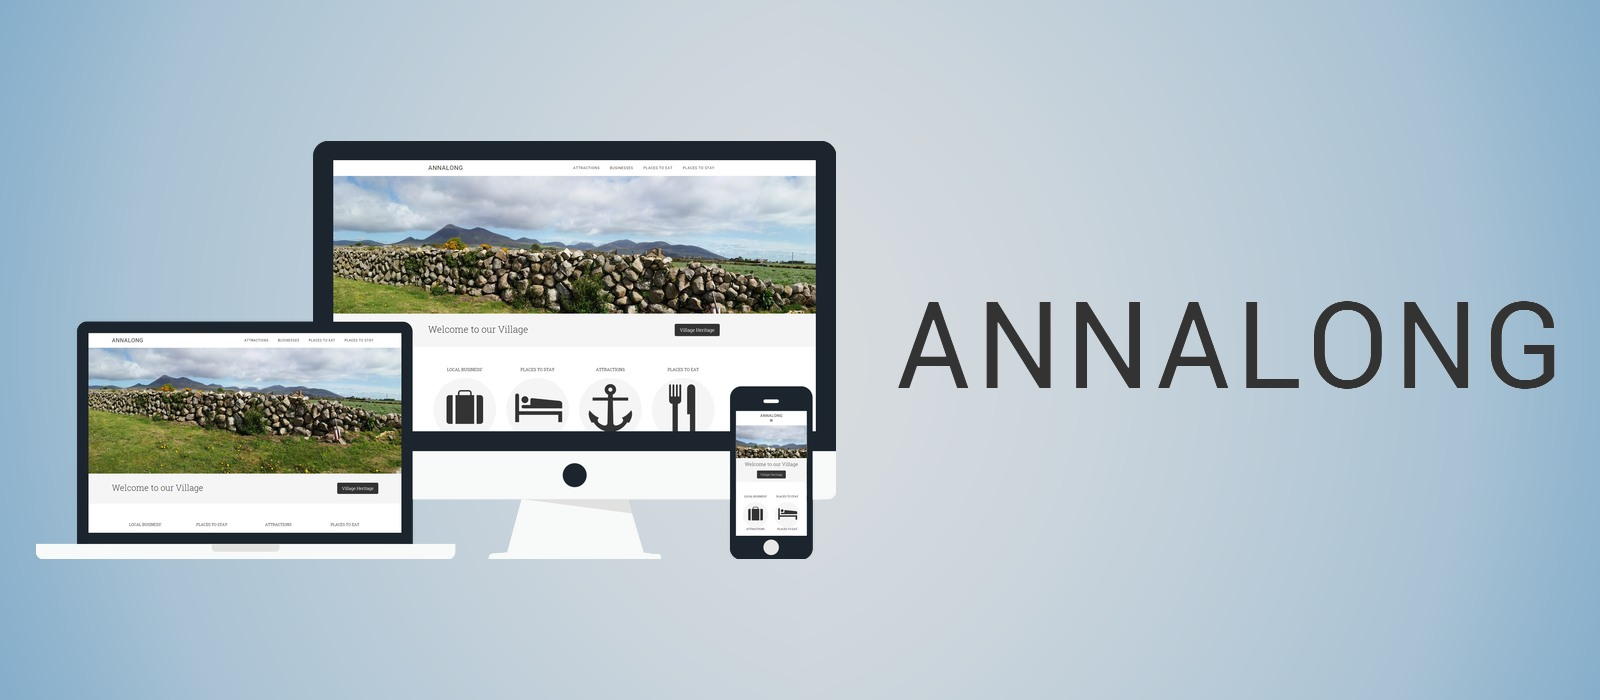 Annalong Featured Image